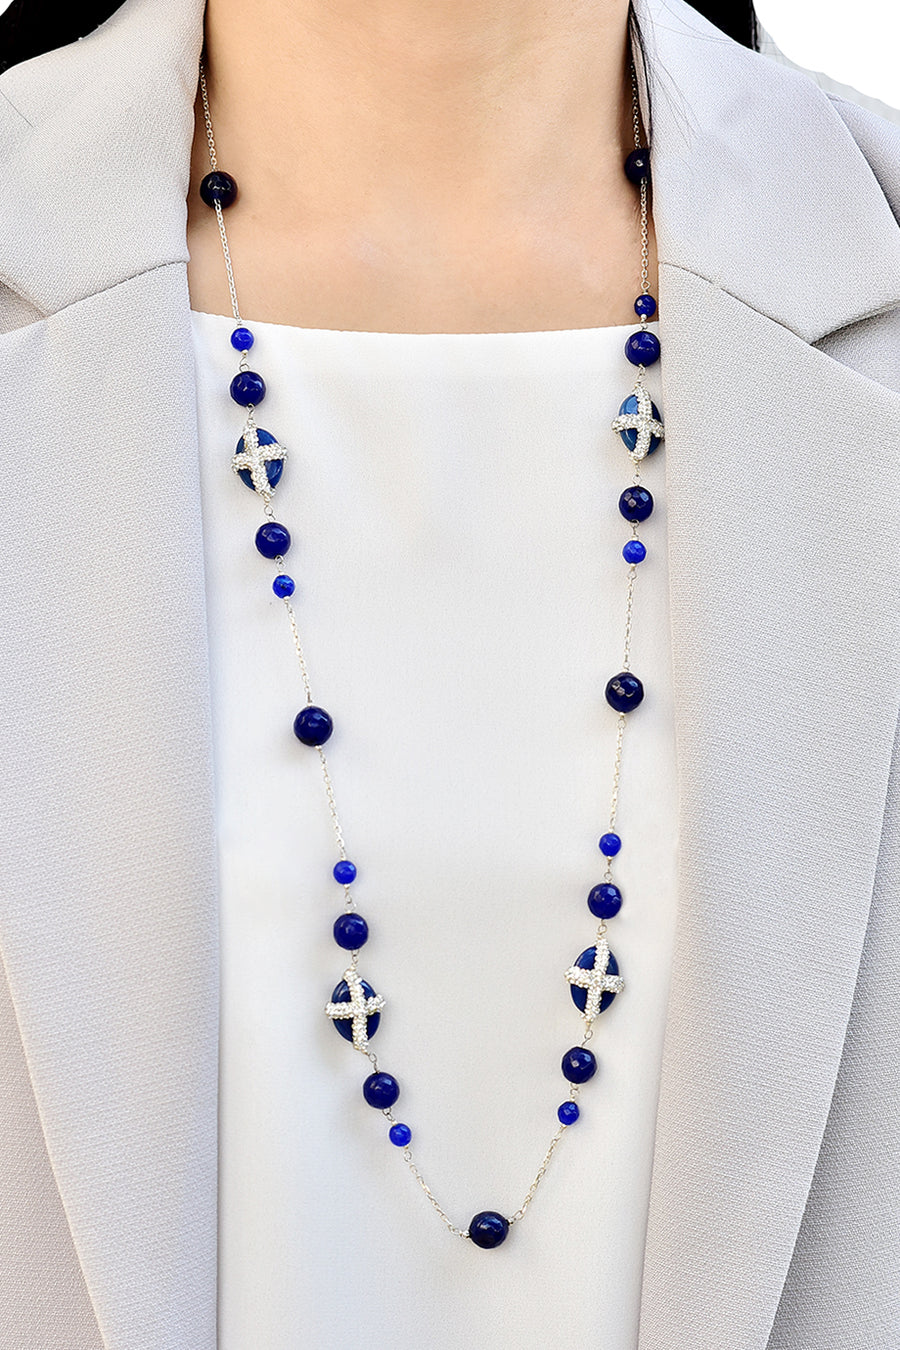 Blue Agate with Cubic Zirconia Long Necklace Lifestyle